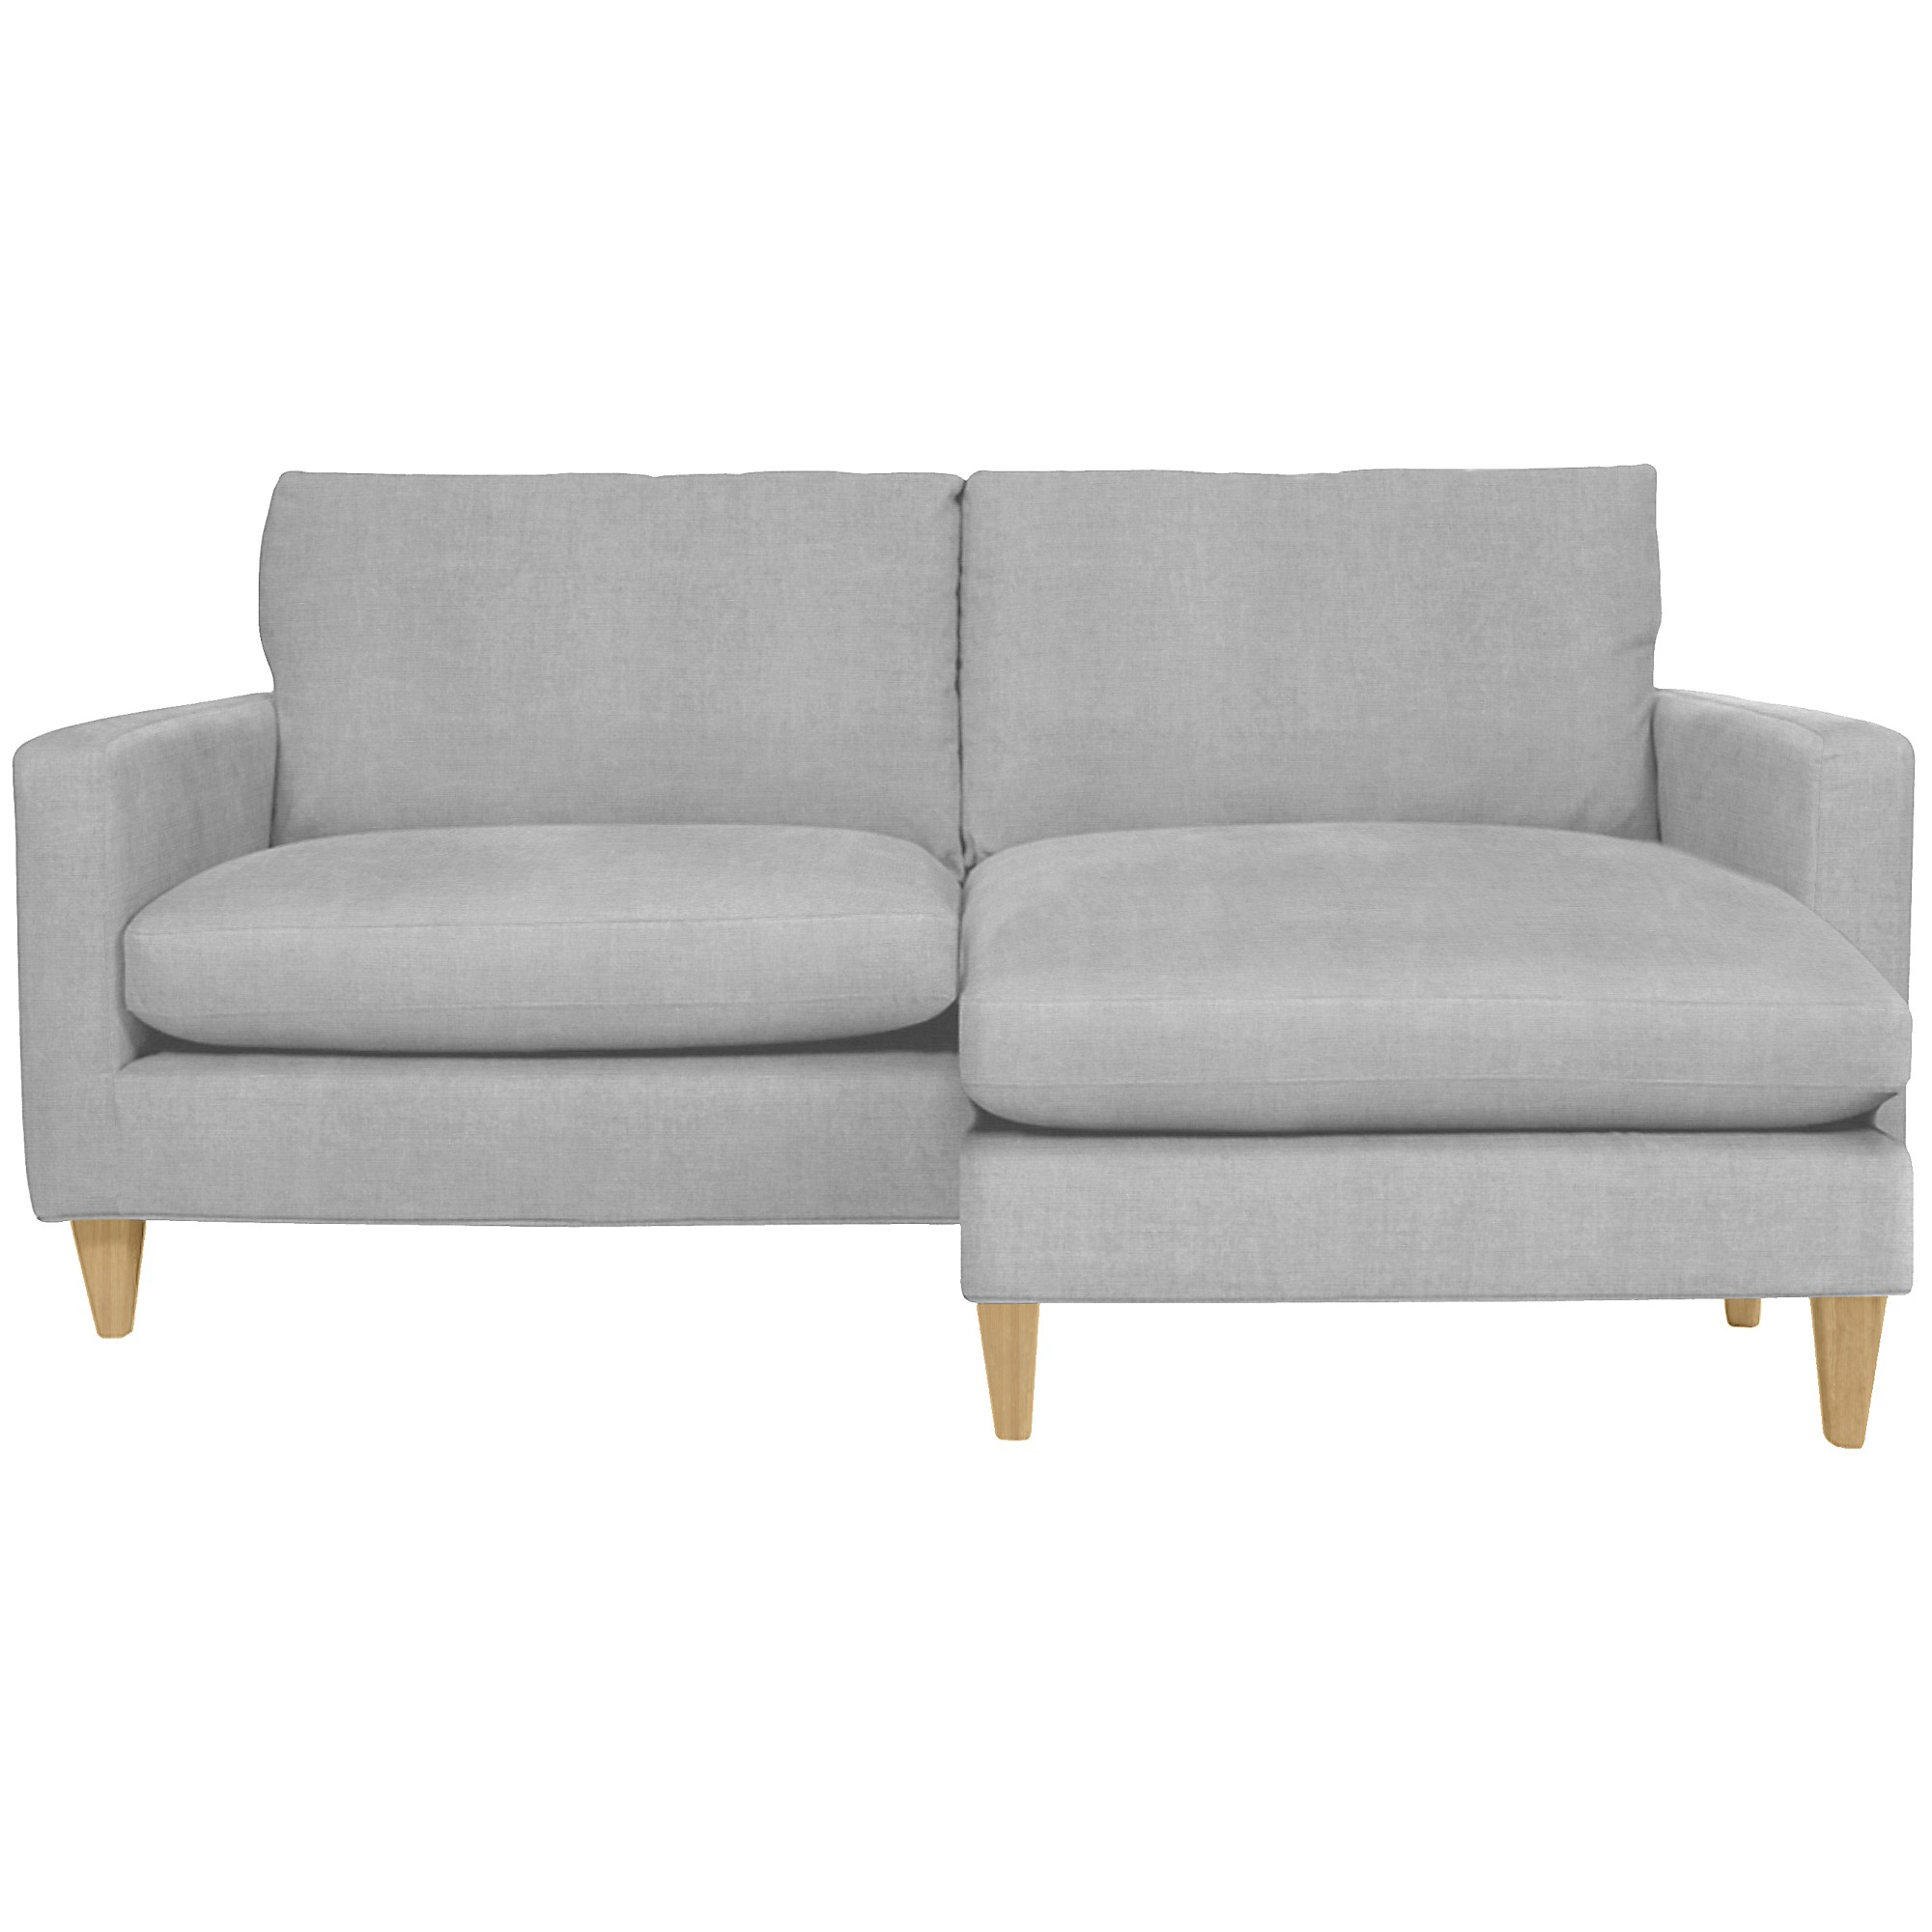 John lewis bailey fixed cover rhf chaise end sofa review for Chaise end sofas